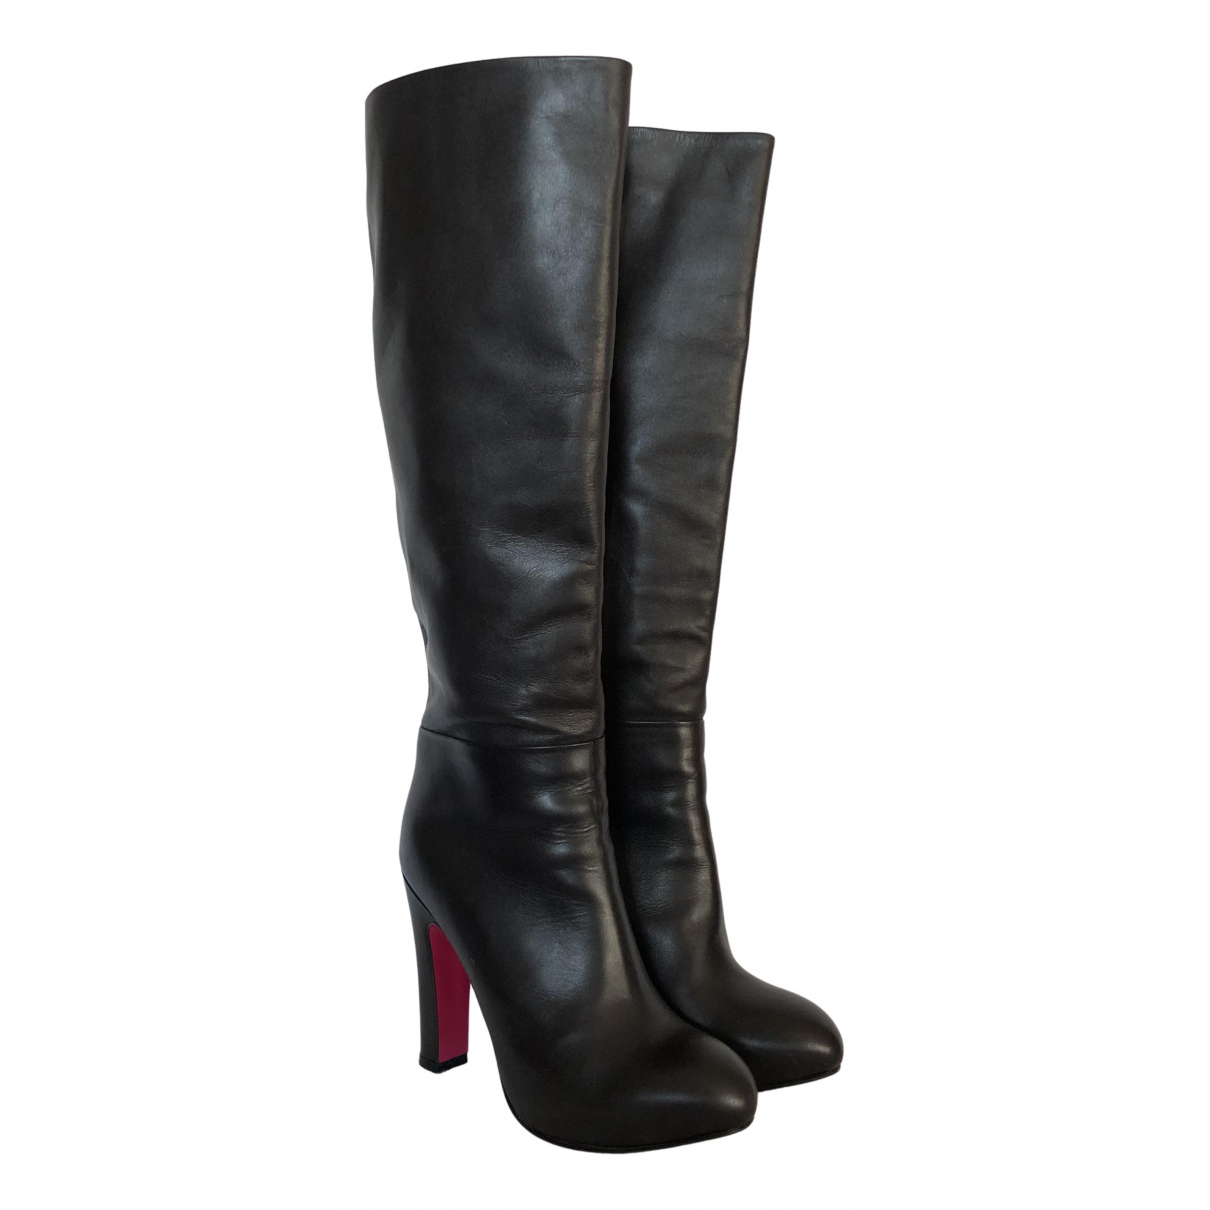 Luciano Padovan N Black Leather Boots for Women 36 IT